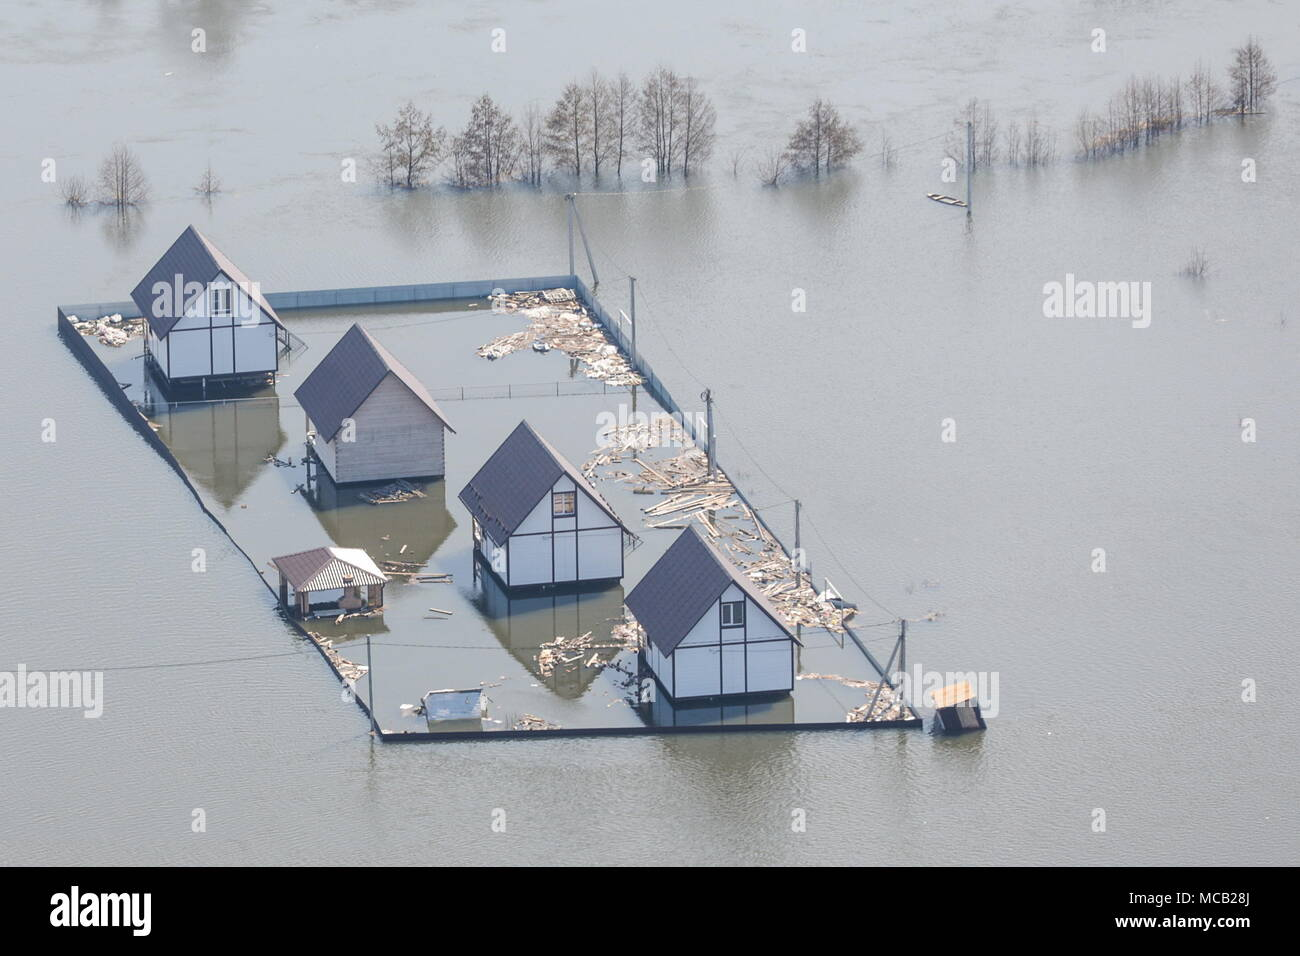 Russia. 15th Apr, 2018. VORONEZH REGION, RUSSIA - APRIL 15, 2018: A view from an Emercom helicopter over a village hit by spring floods in the Voronezh Region. Mikhail Pochuyev/TASS Credit: ITAR-TASS News Agency/Alamy Live News - Stock Image